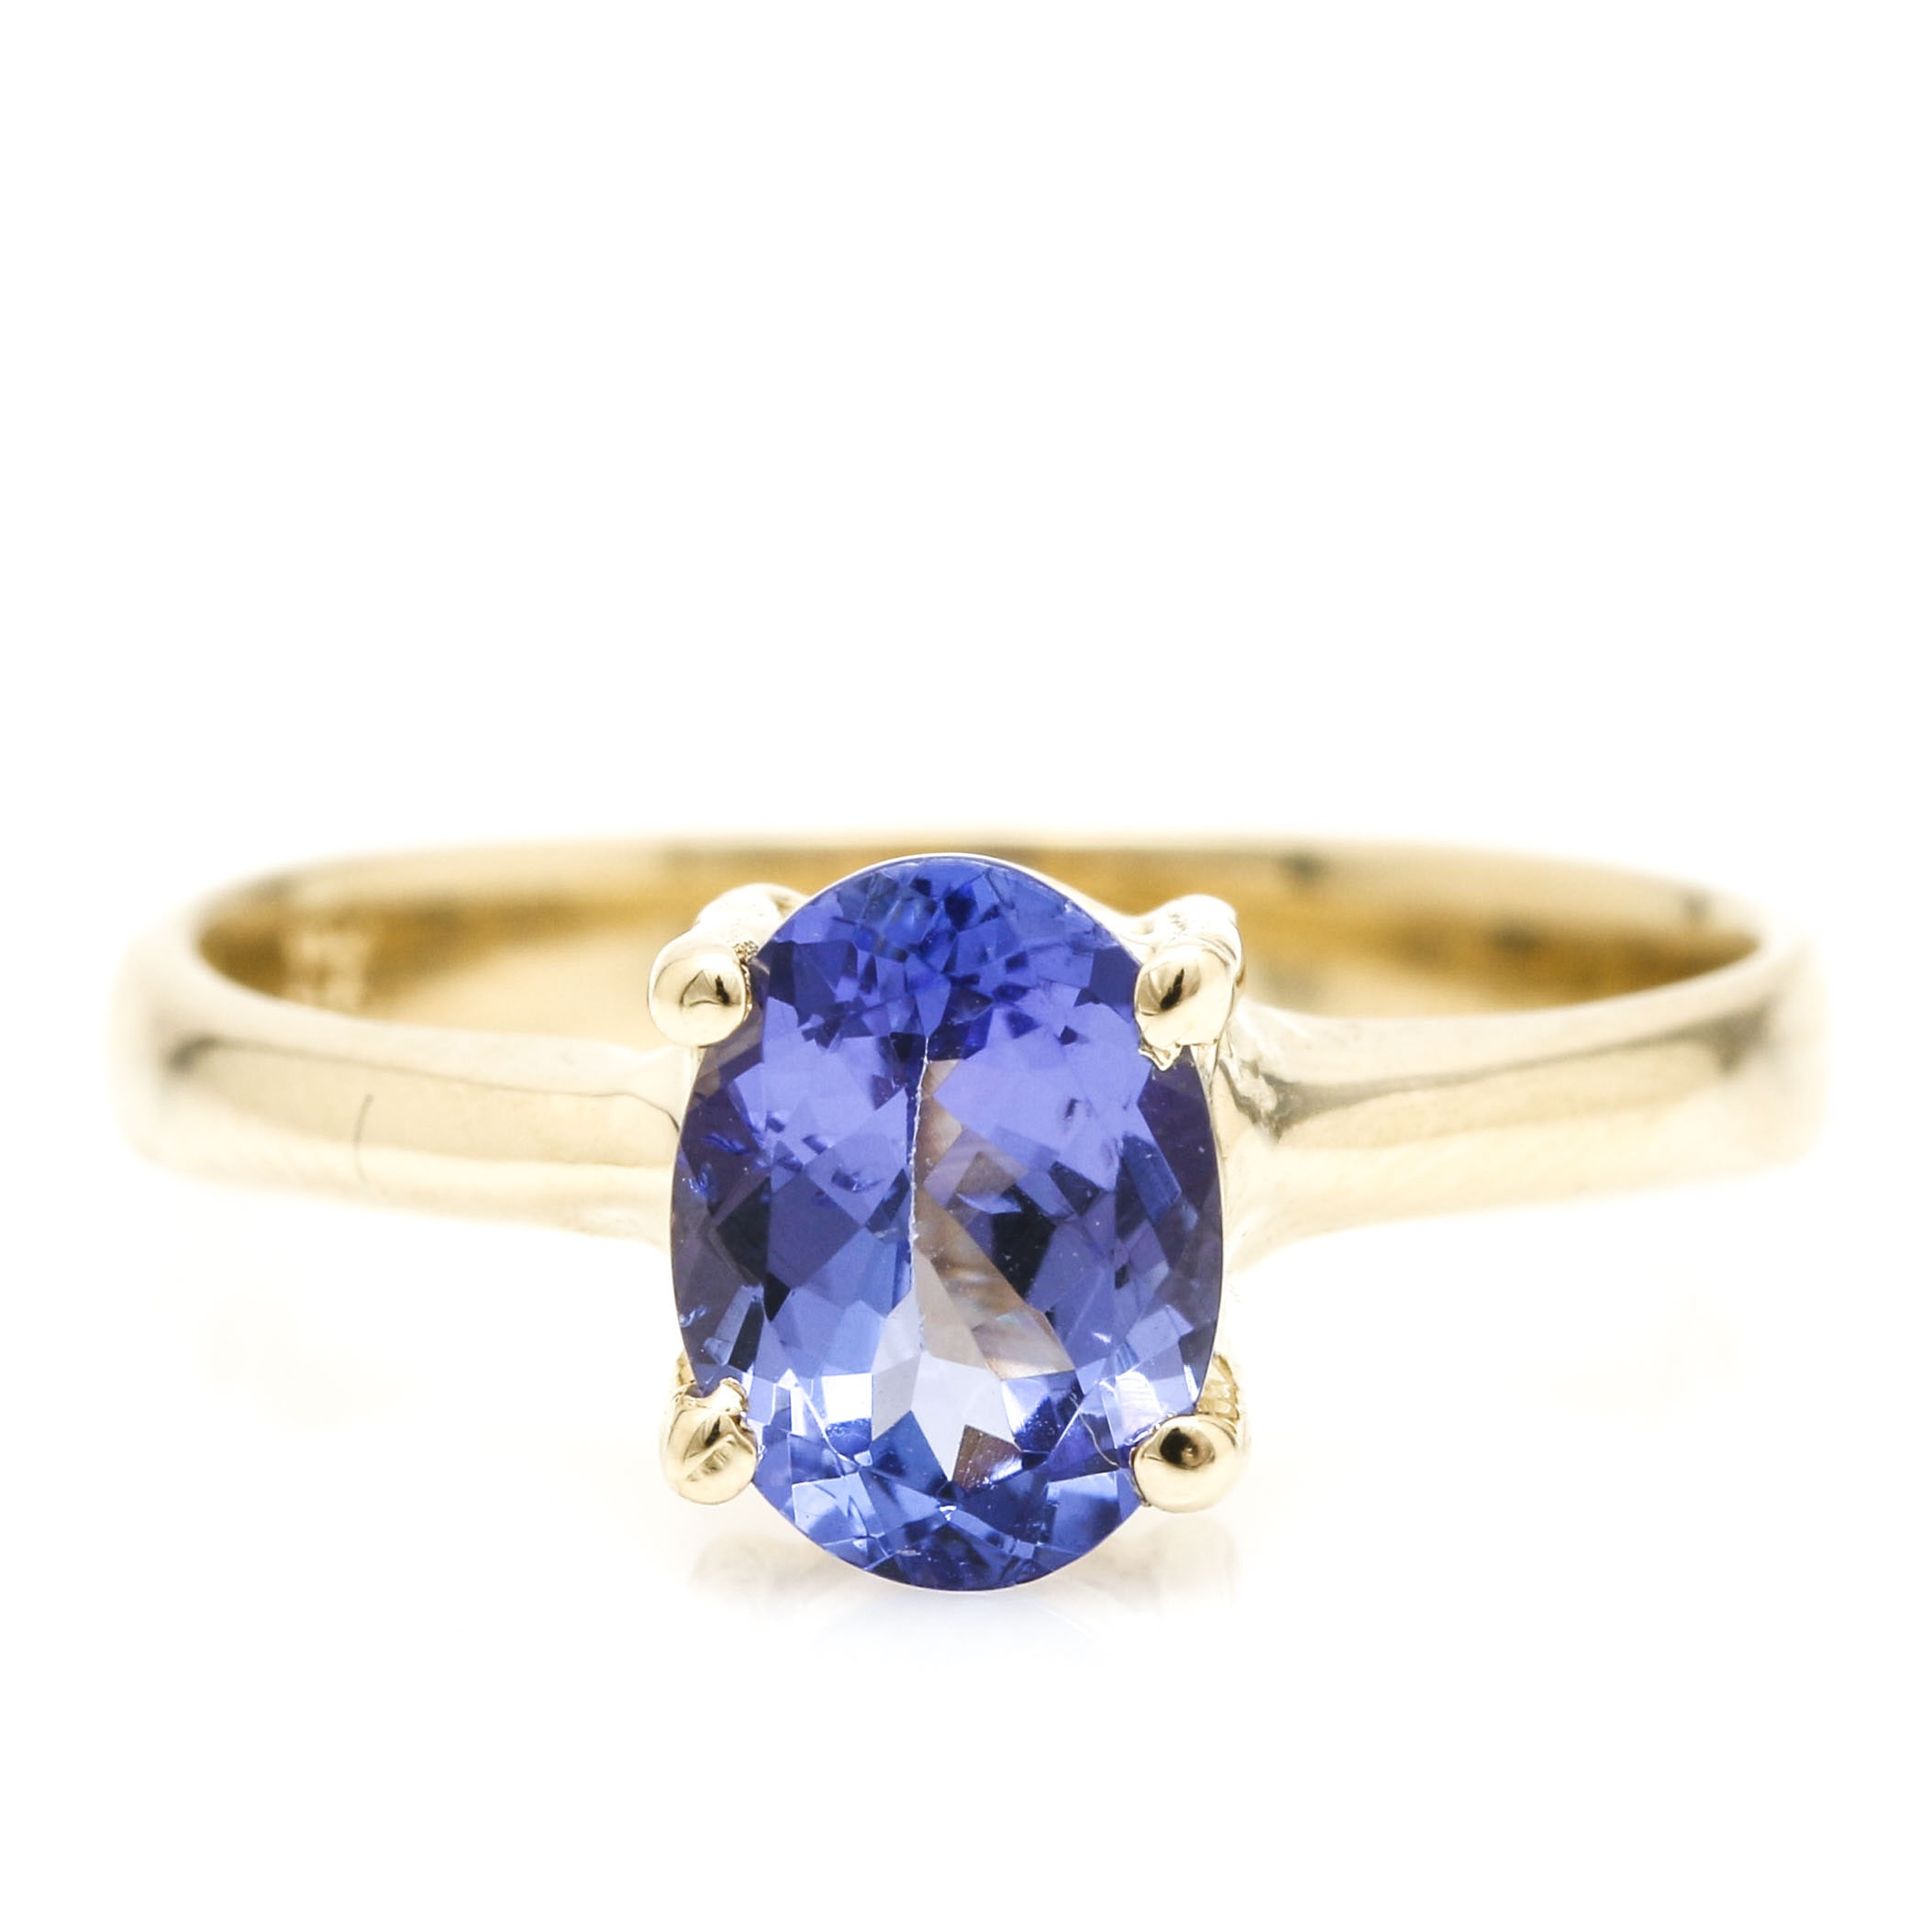 14K Yellow Gold 1.17 CT Tanzanite Ring